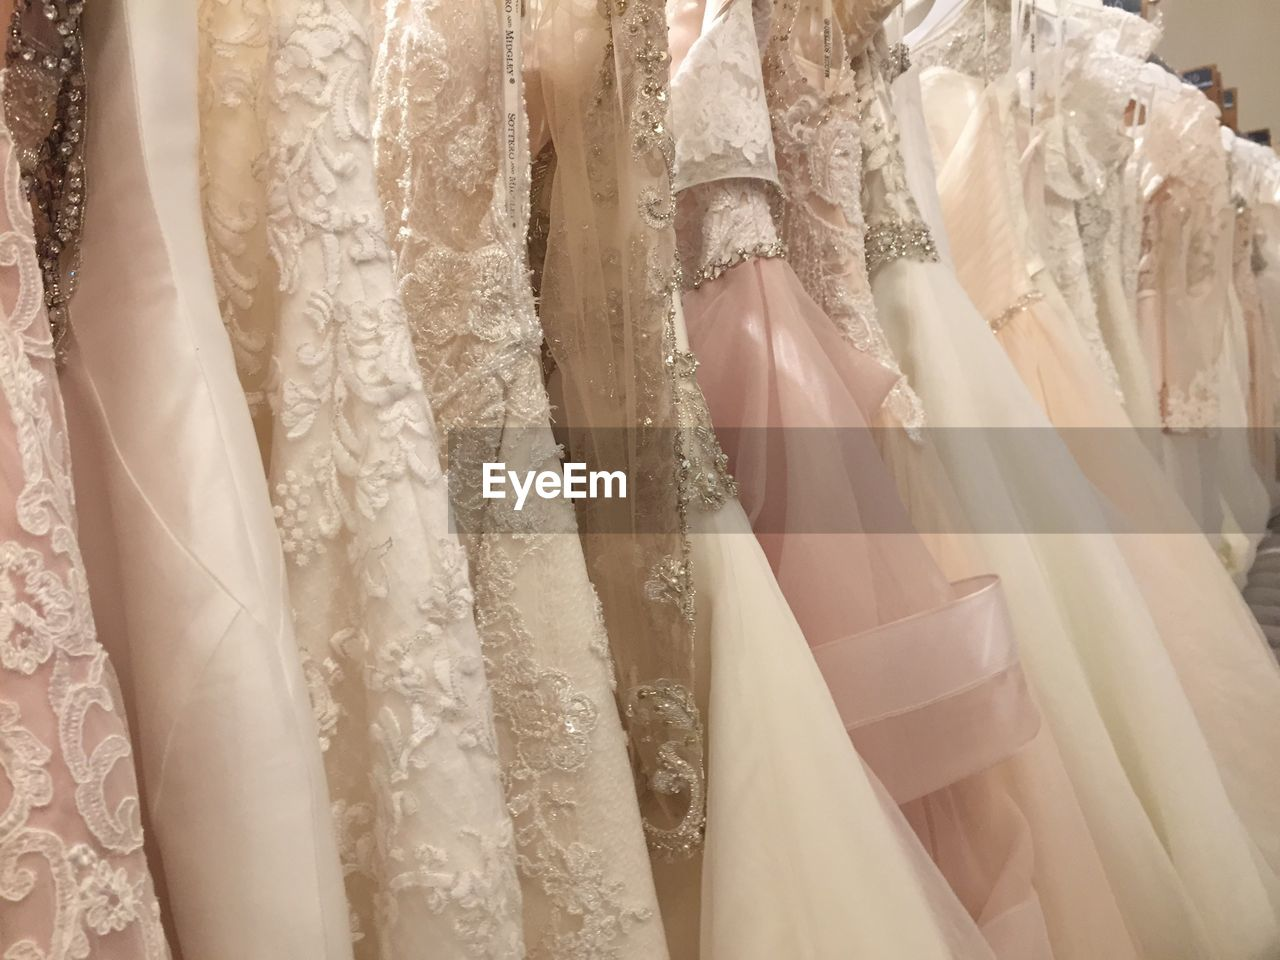 retail, store, wedding dress, wedding, backgrounds, white color, textile, fashion, indoors, bride, bridal shop, formalwear, close-up, day